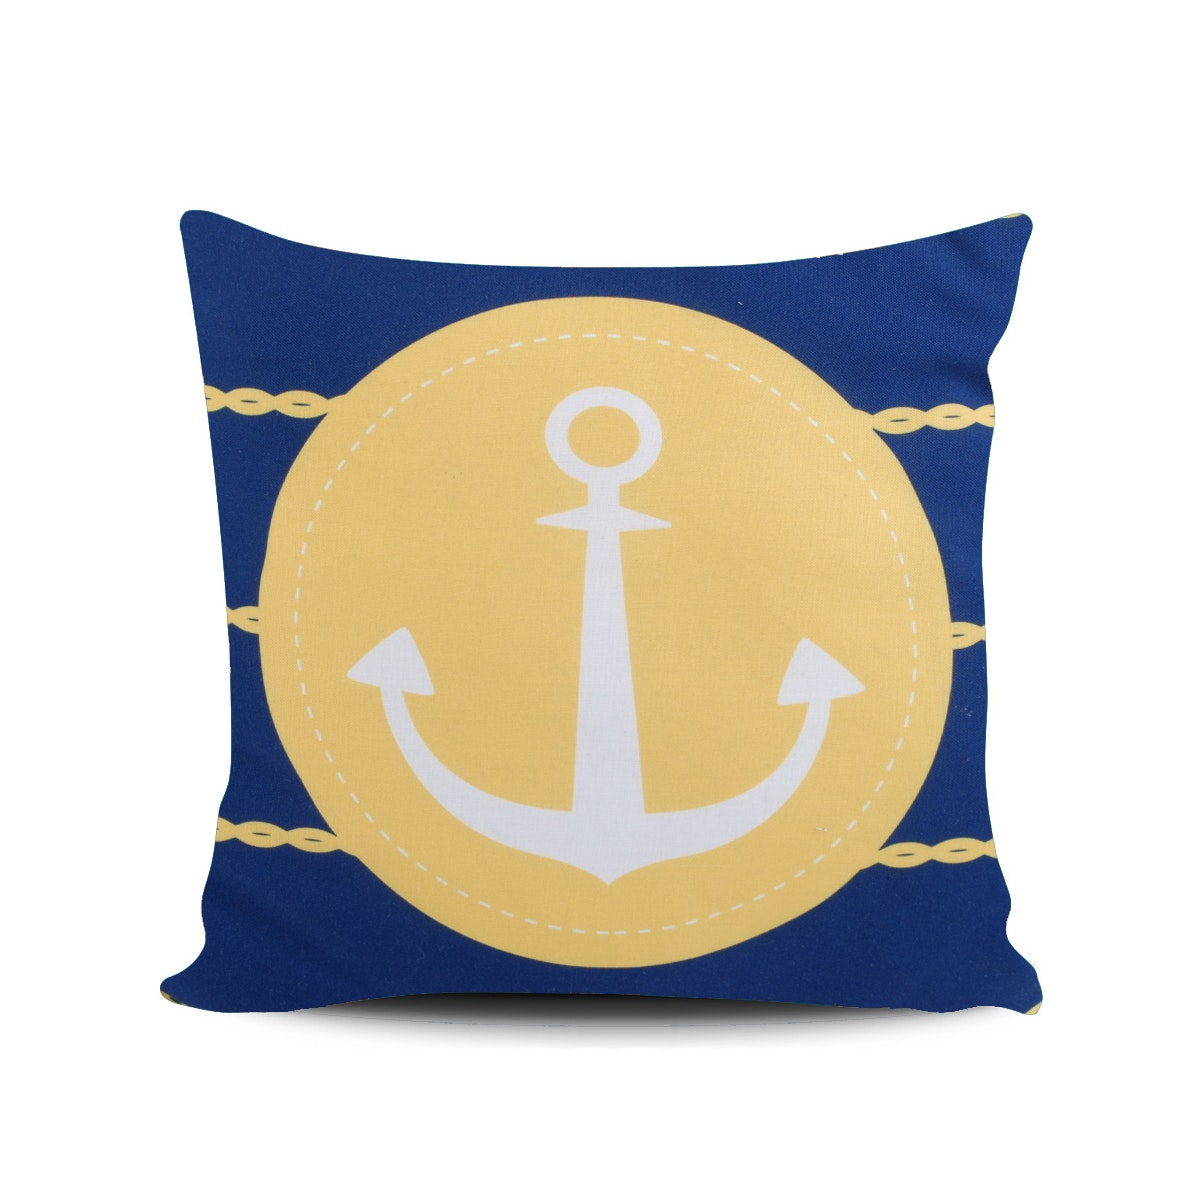 Myka_kids Navy Anchor Cushion 40x40